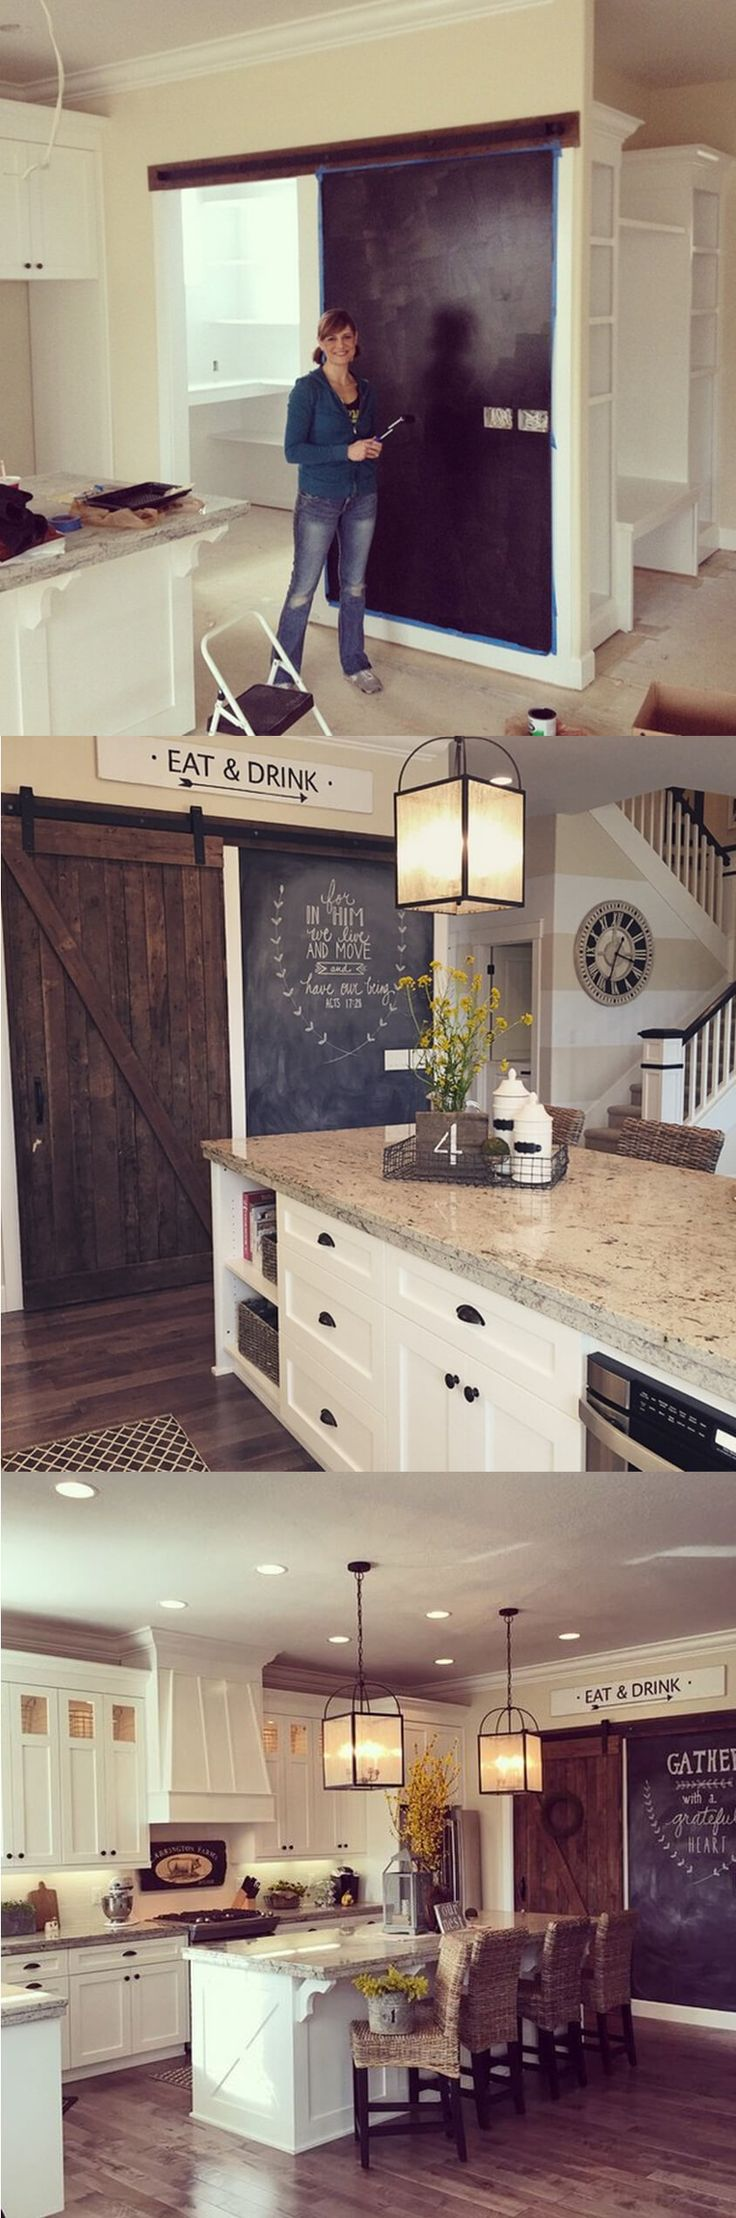 top 25 best small rustic kitchens ideas on pinterest farm kitchen interior farm kitchen inspiration and farmhouse kitchens - Rustic Kitchen Decor Ideas